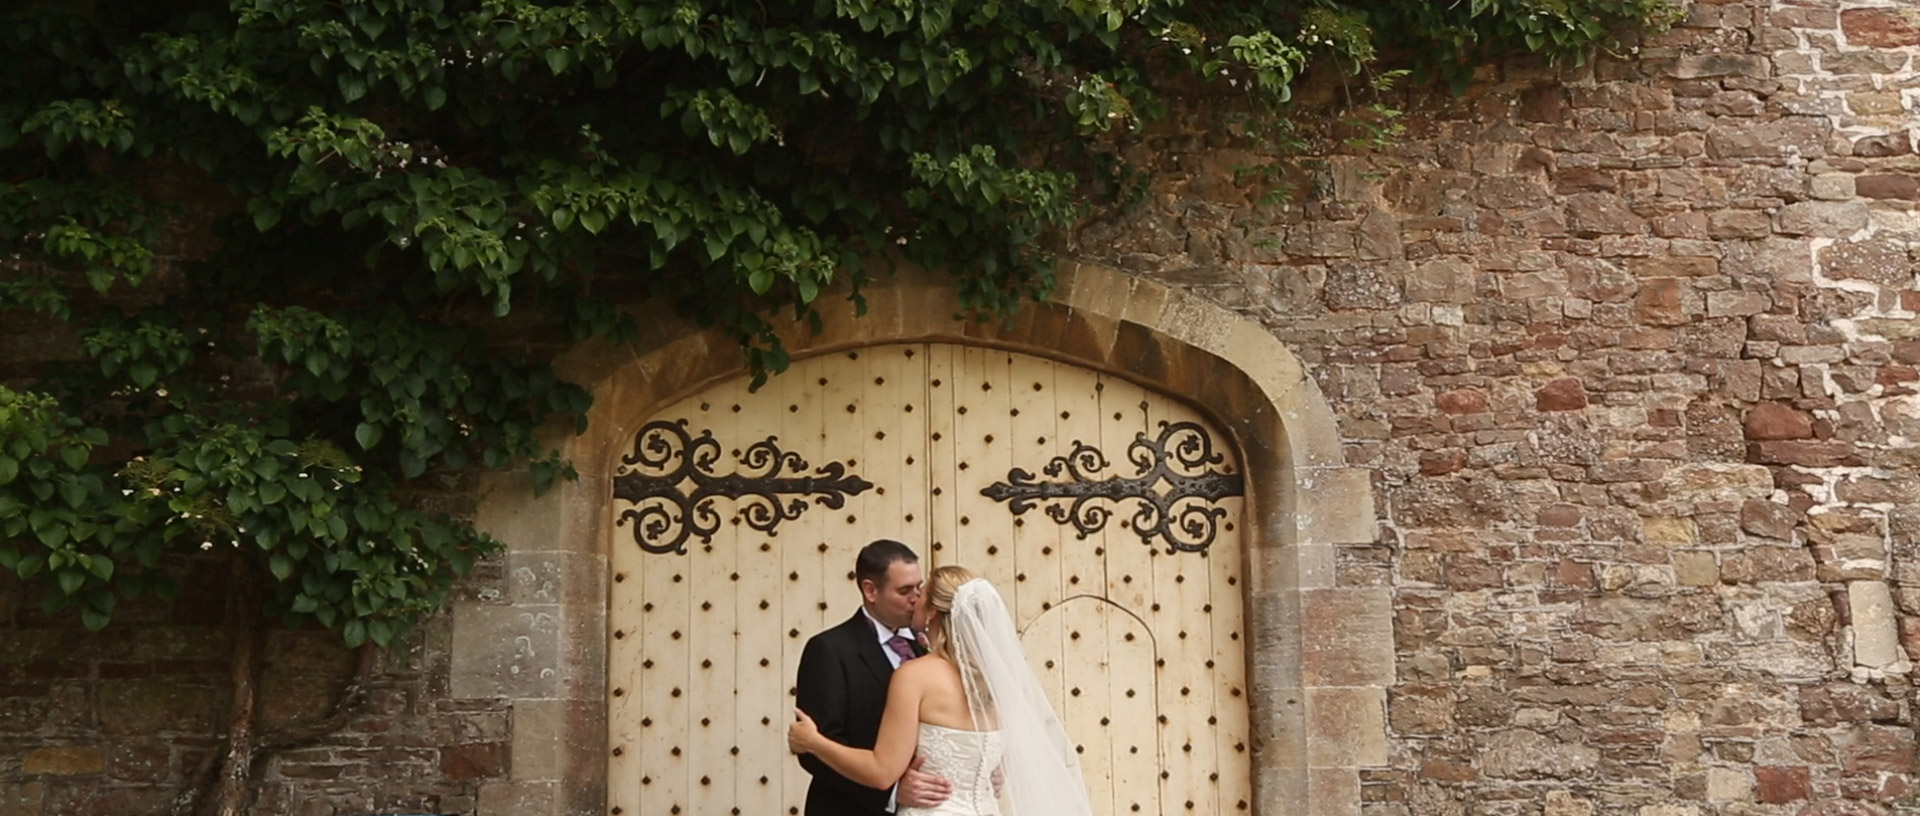 thornbury-castle-wedding-videography-ronelle-damon-video